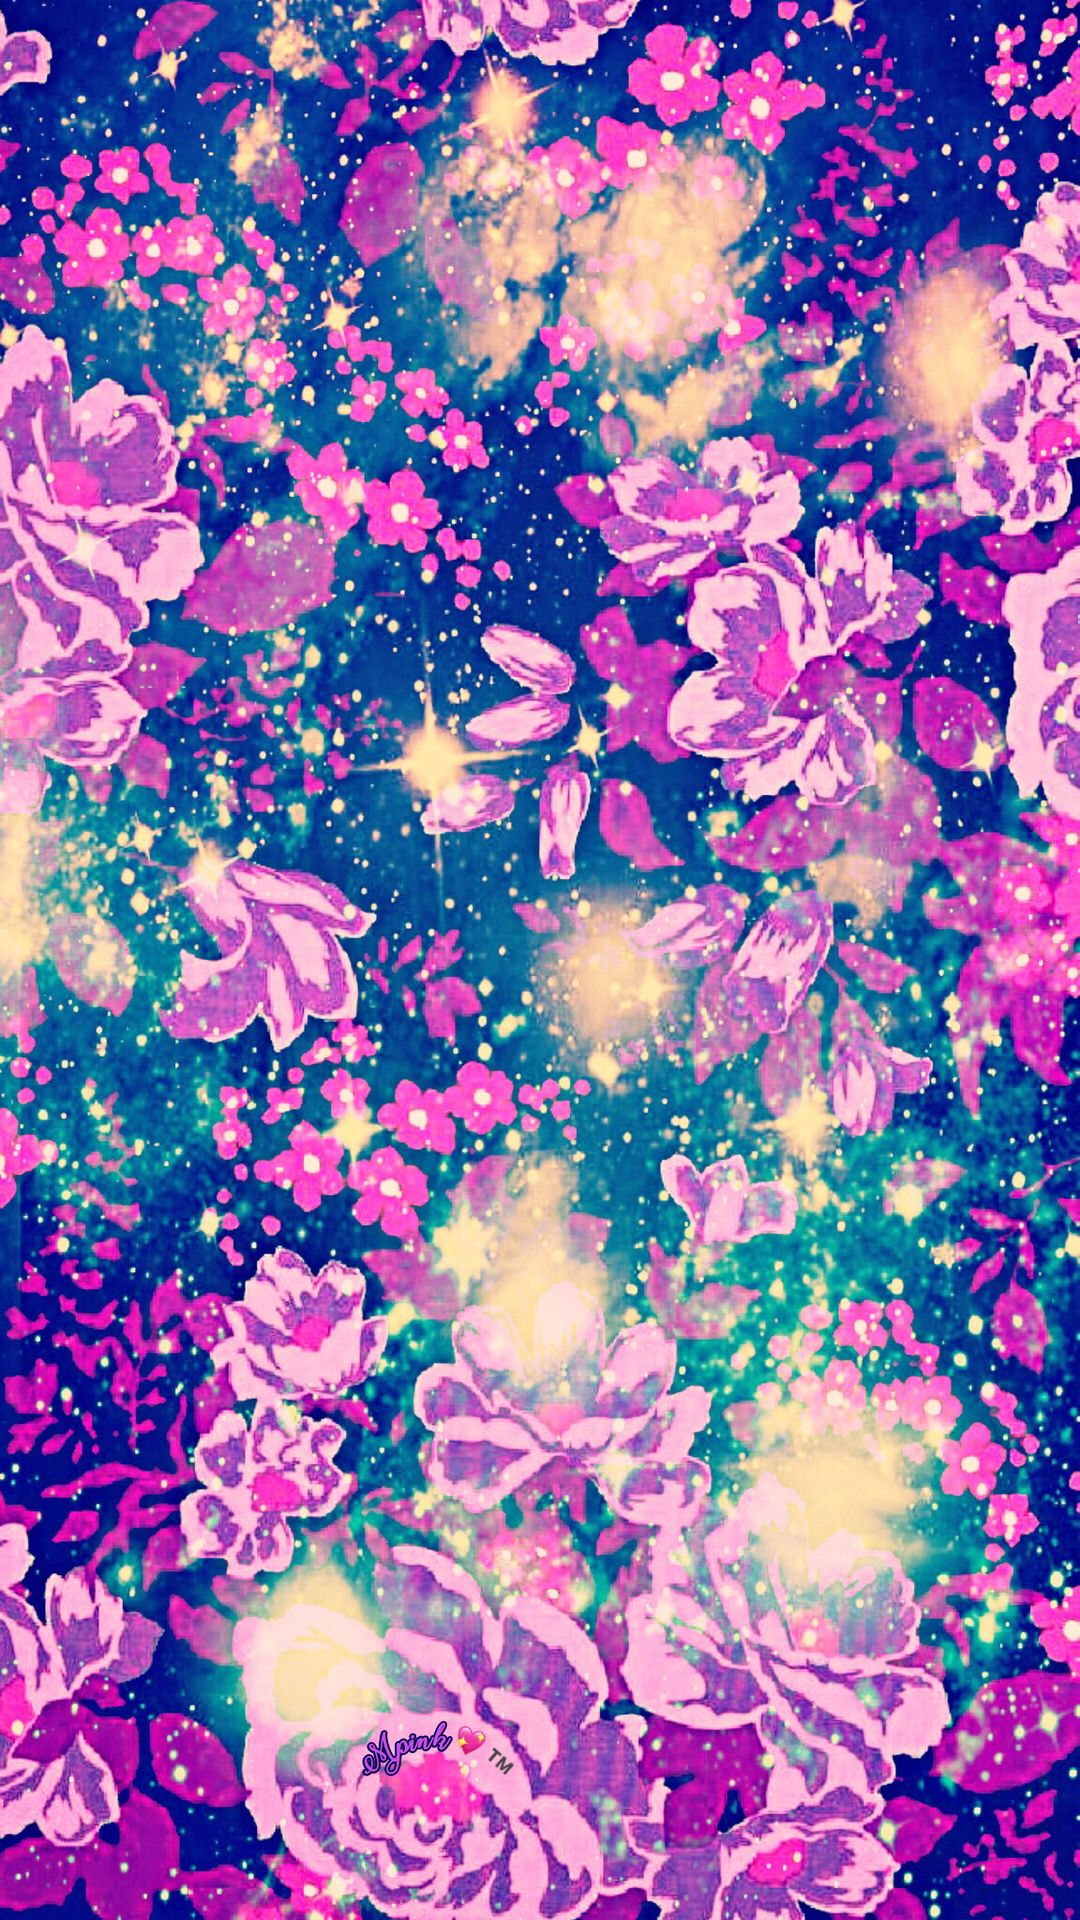 Mystical Flowers Galaxy Wallpaper Androidwallpaper Iphonewallpaper